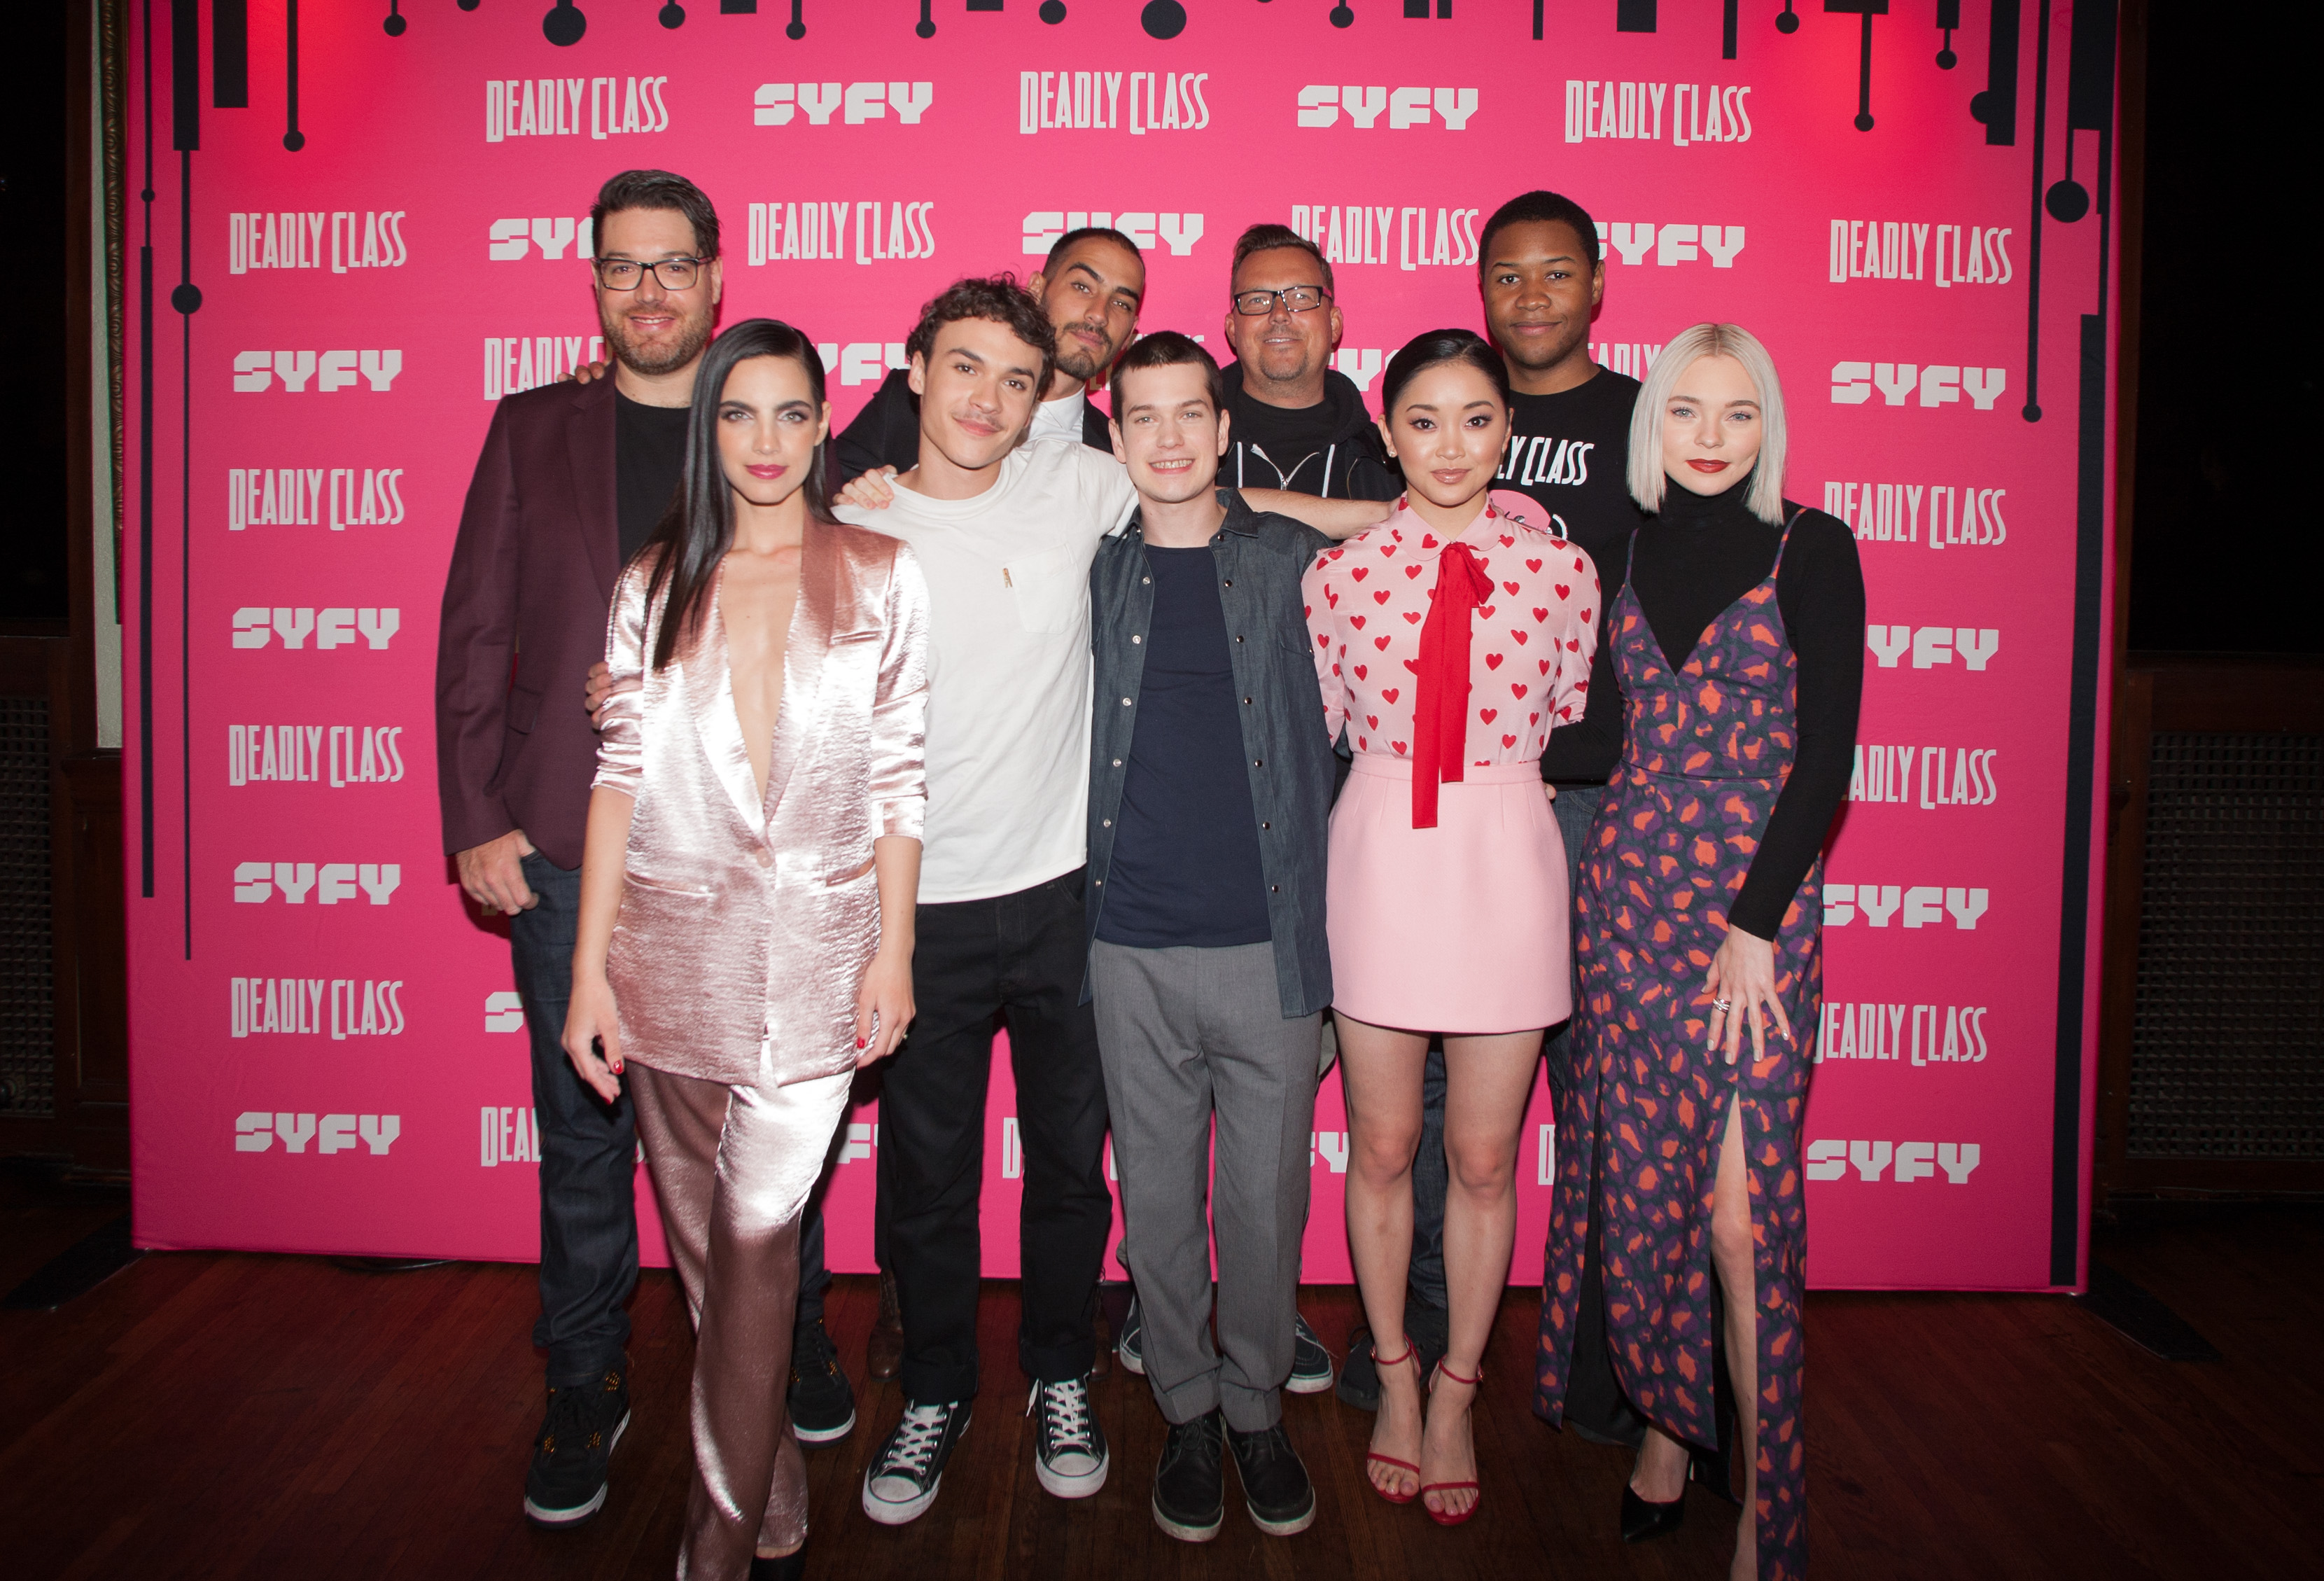 (L-R) Miles Orion Feldsott, María Gabriela de Faría, Benjamin Wadsworth, Michel Duval, Liam James, Rick Remender, Lana Condor, Luke Tennie and Taylor Hickson attend the premiere week screening of SYFY's 'Deadly Class', hosted by Kevin Smith, at The Wilshire Ebell Theatre on January 14, 2019 in Los Angeles, California.